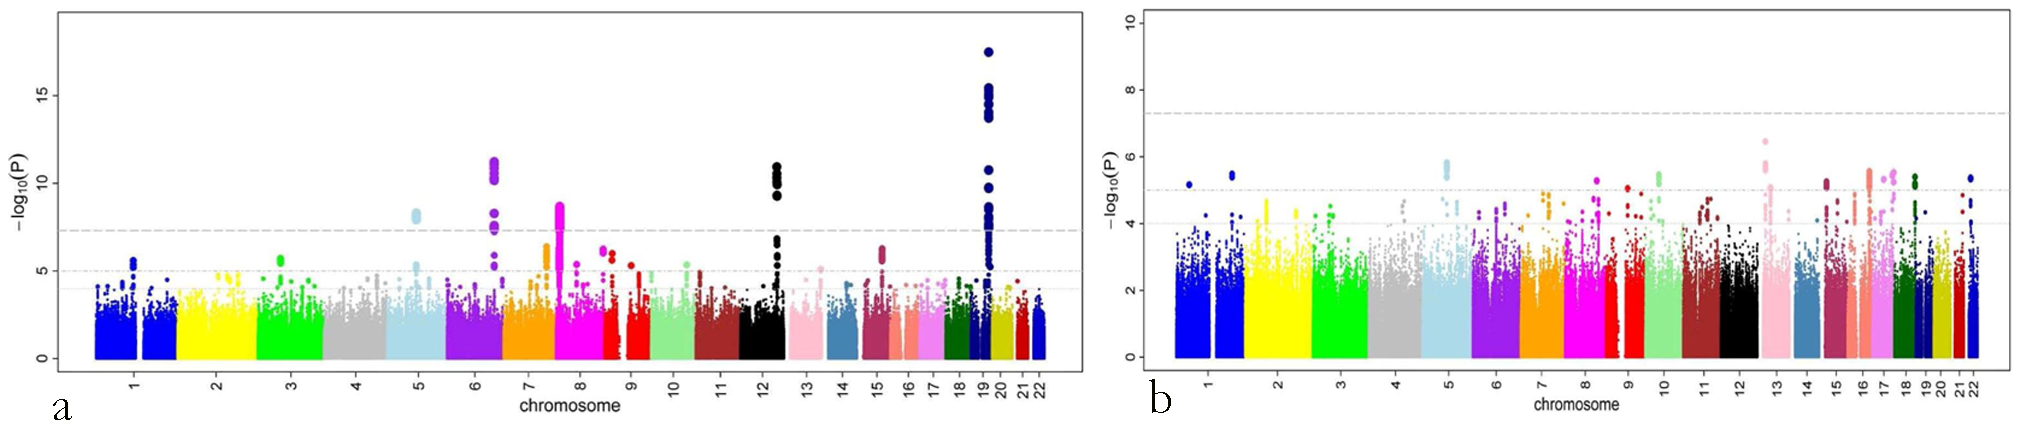 P-values (minus log-transformed) are shown in a signal intensity (Manhattan) plot relative to their genomic position.